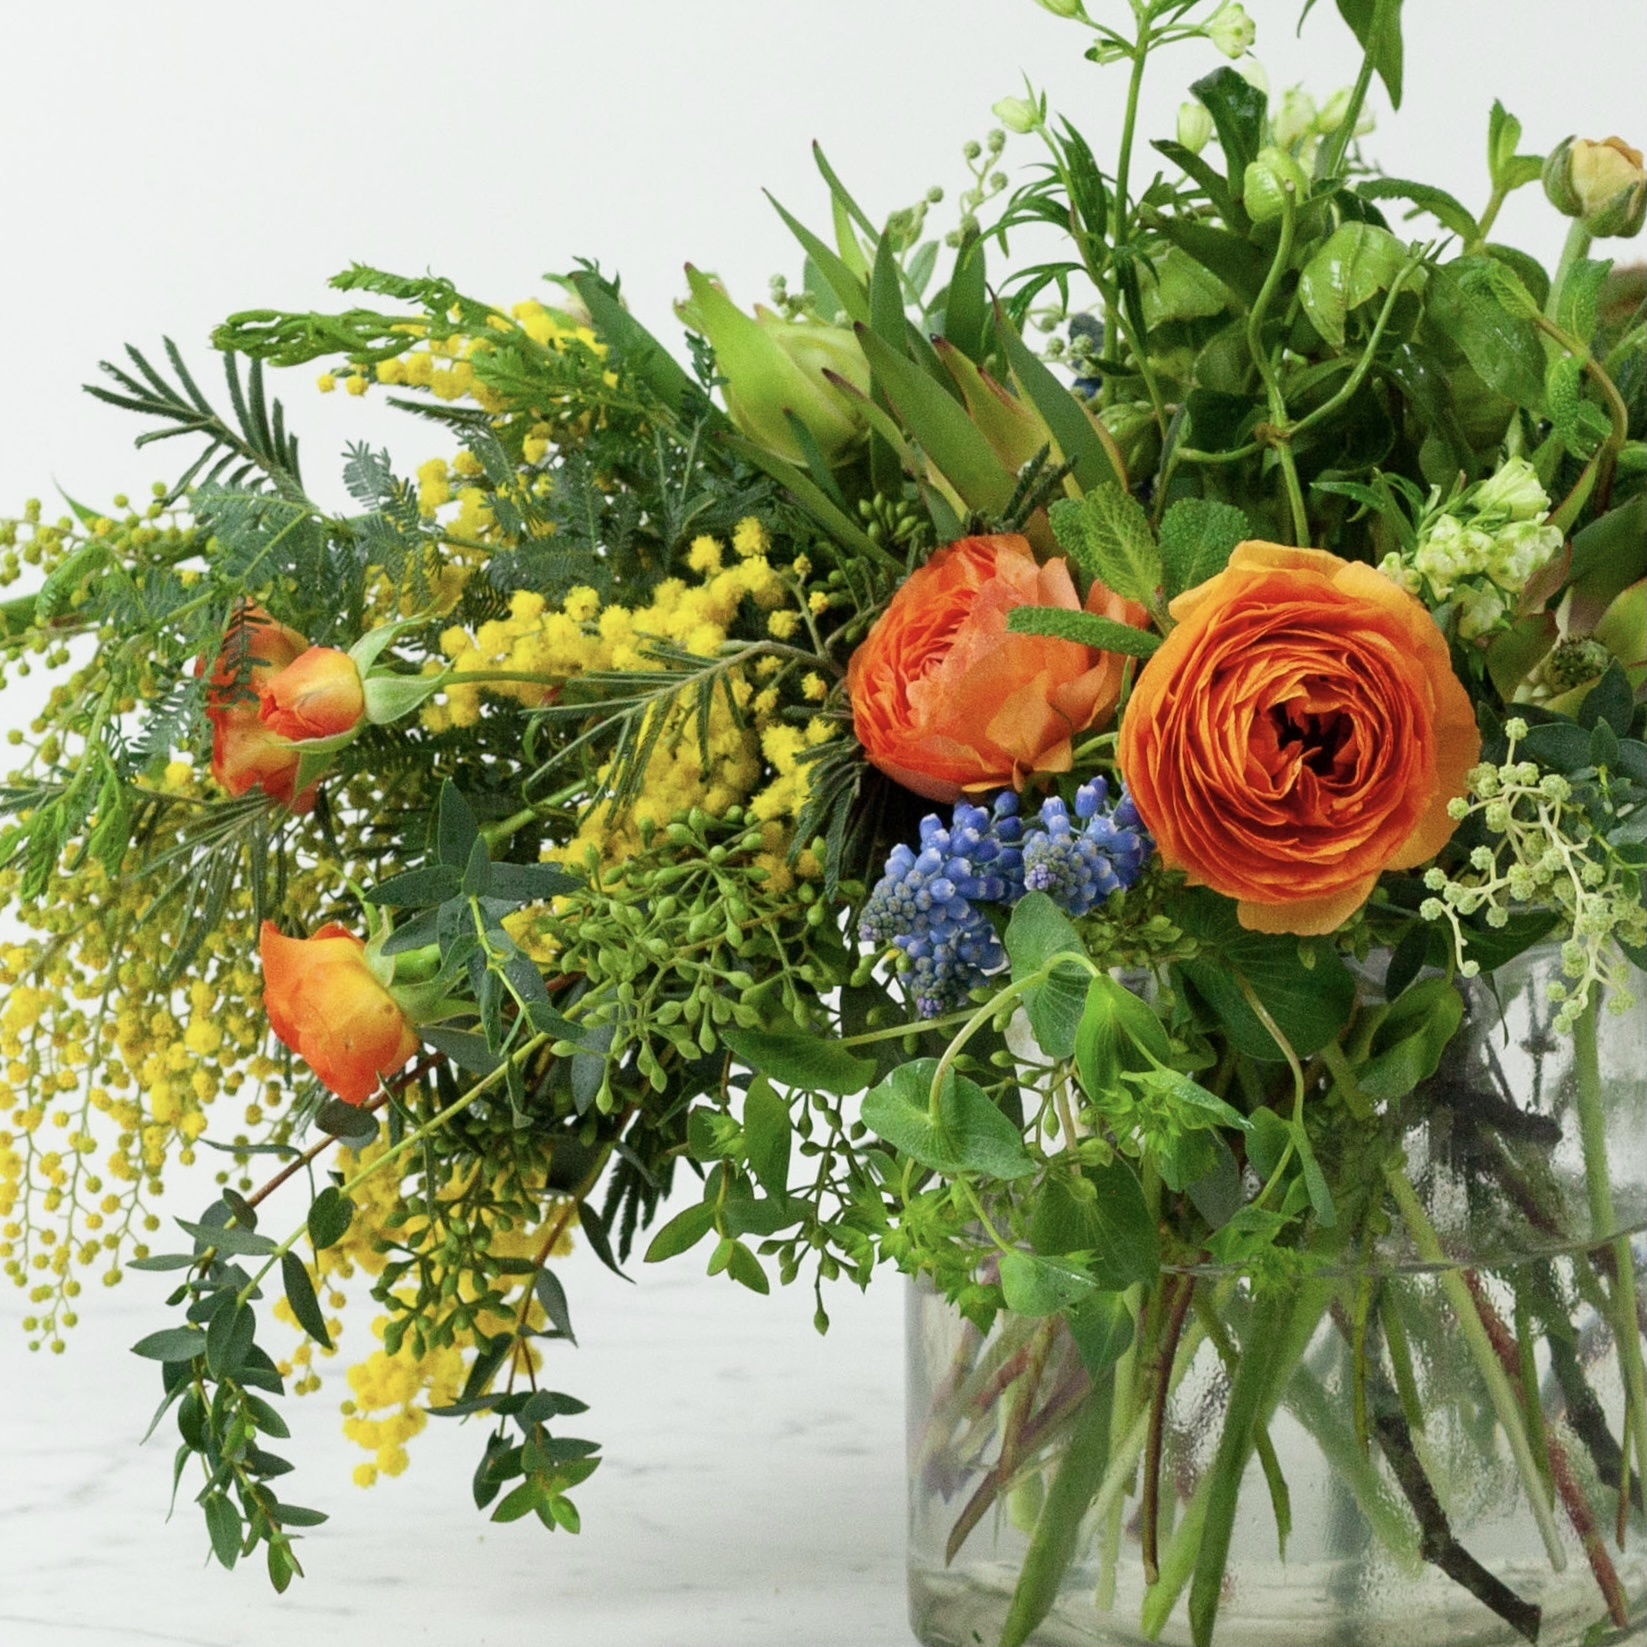 The Foundry Home Goods Foundry Classic Floral Bouquet in Recycled Glass Vase - Sunday 2/14 Pickup